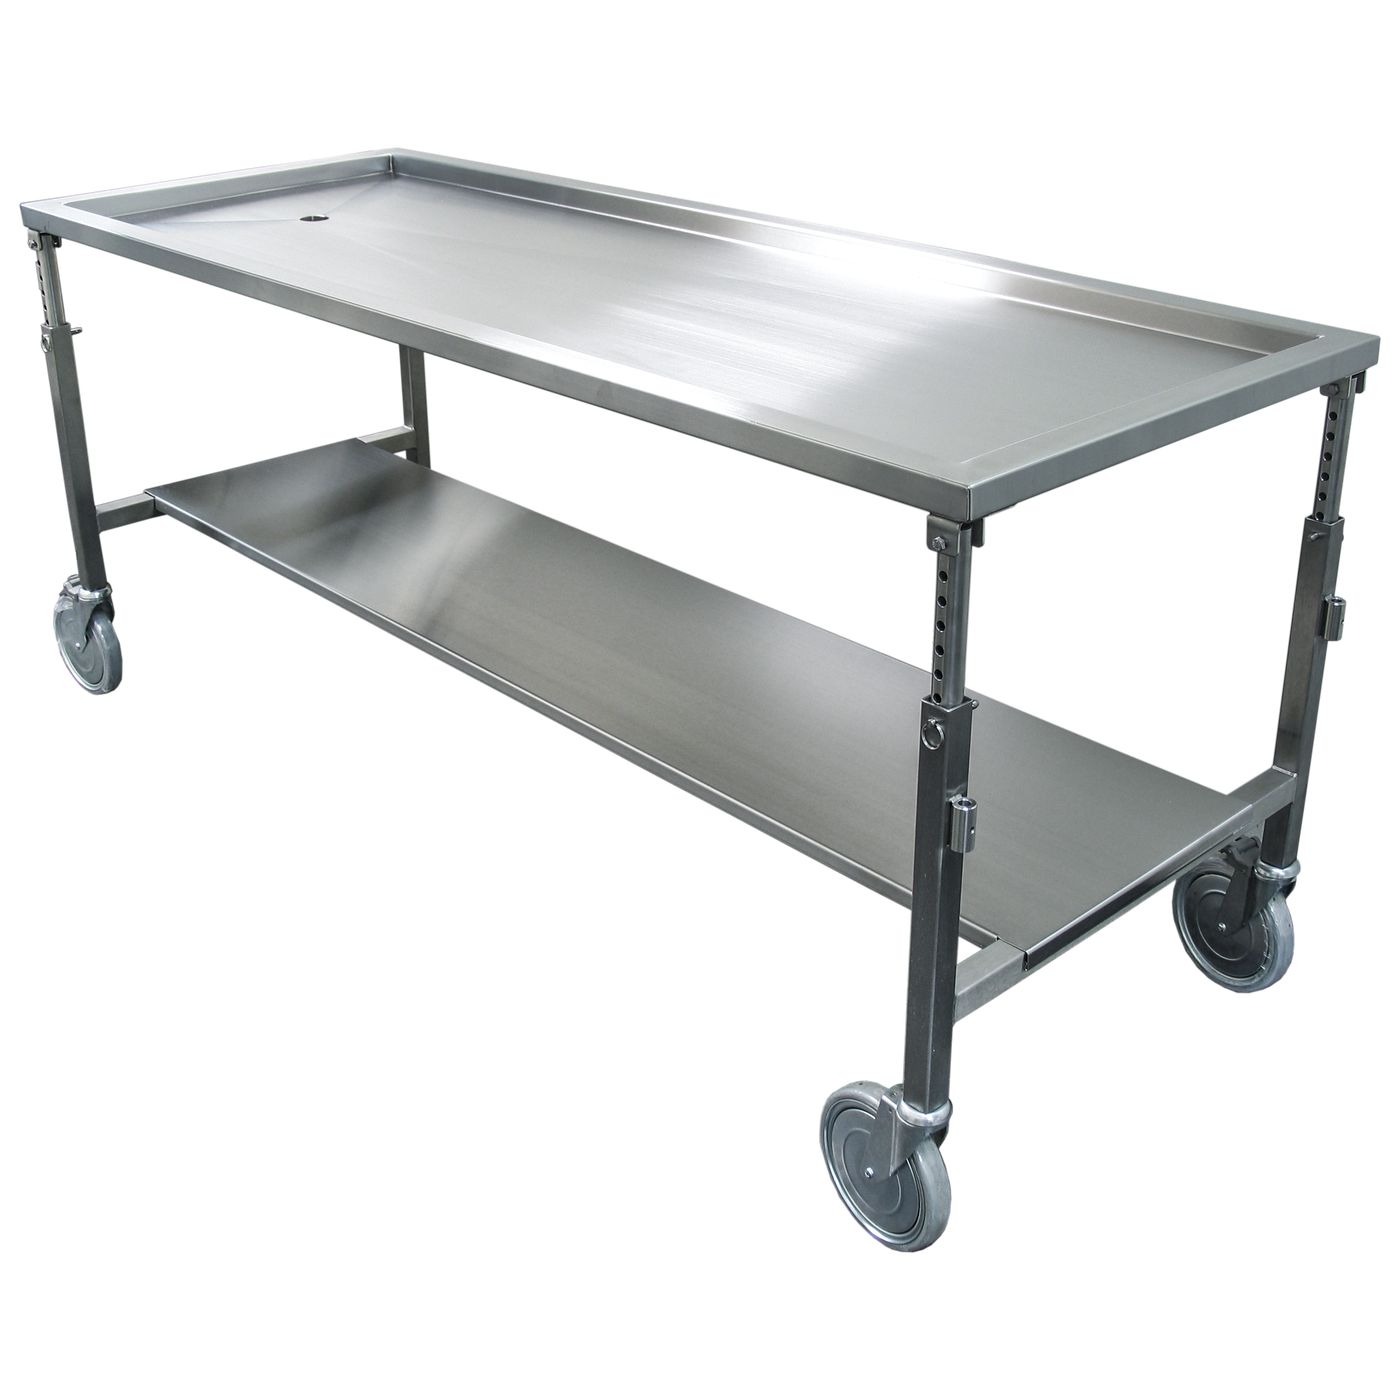 Dissection Table with Manual Height Adjustment-Anatomy Dissection Tables-Mortech Manufacturing Company Inc. Quality Stainless Steel Autopsy, Morgue, Funeral Home, Necropsy, Veterinary / Anatomy, Dissection Equipment and Accessories